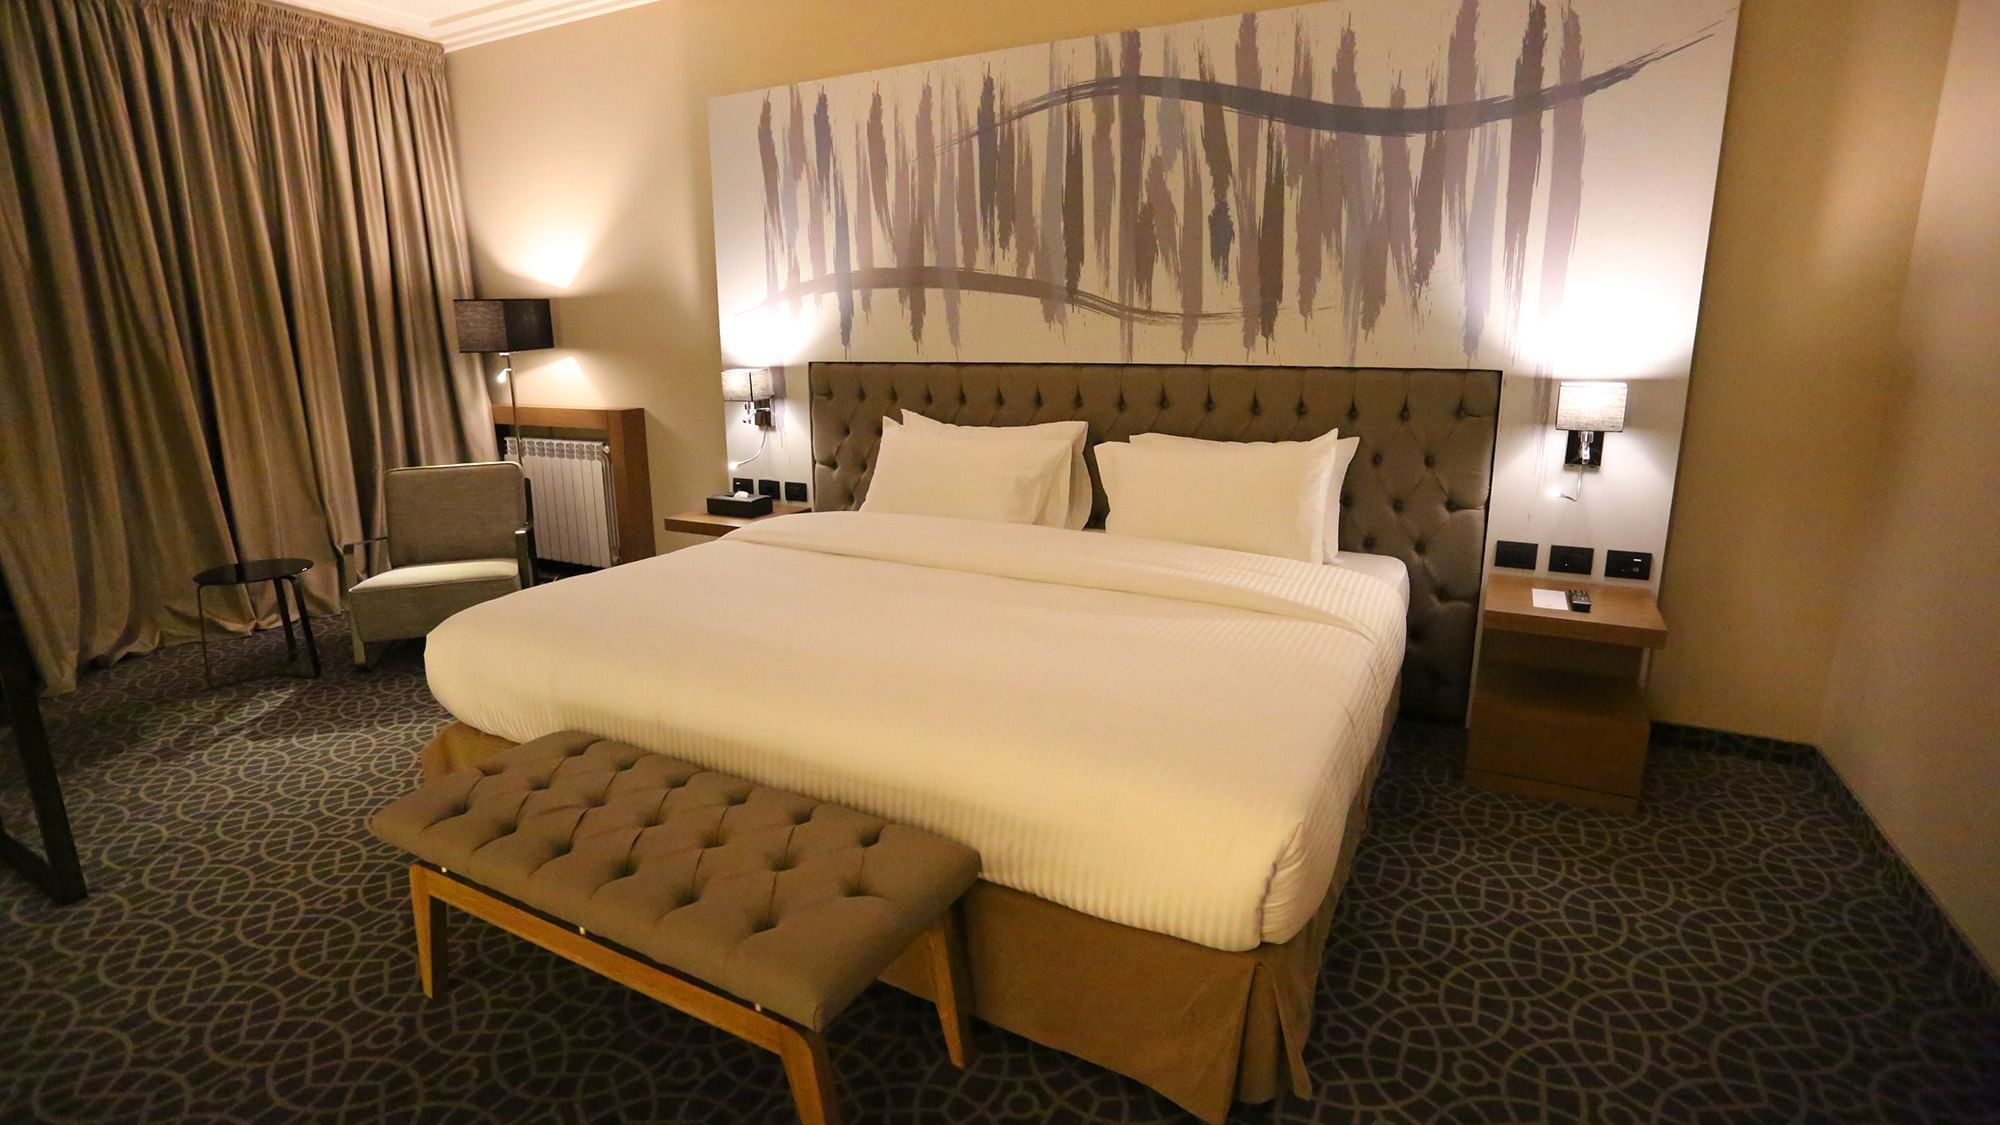 Deluxe Room at Mist hotel and Spa by Warwick